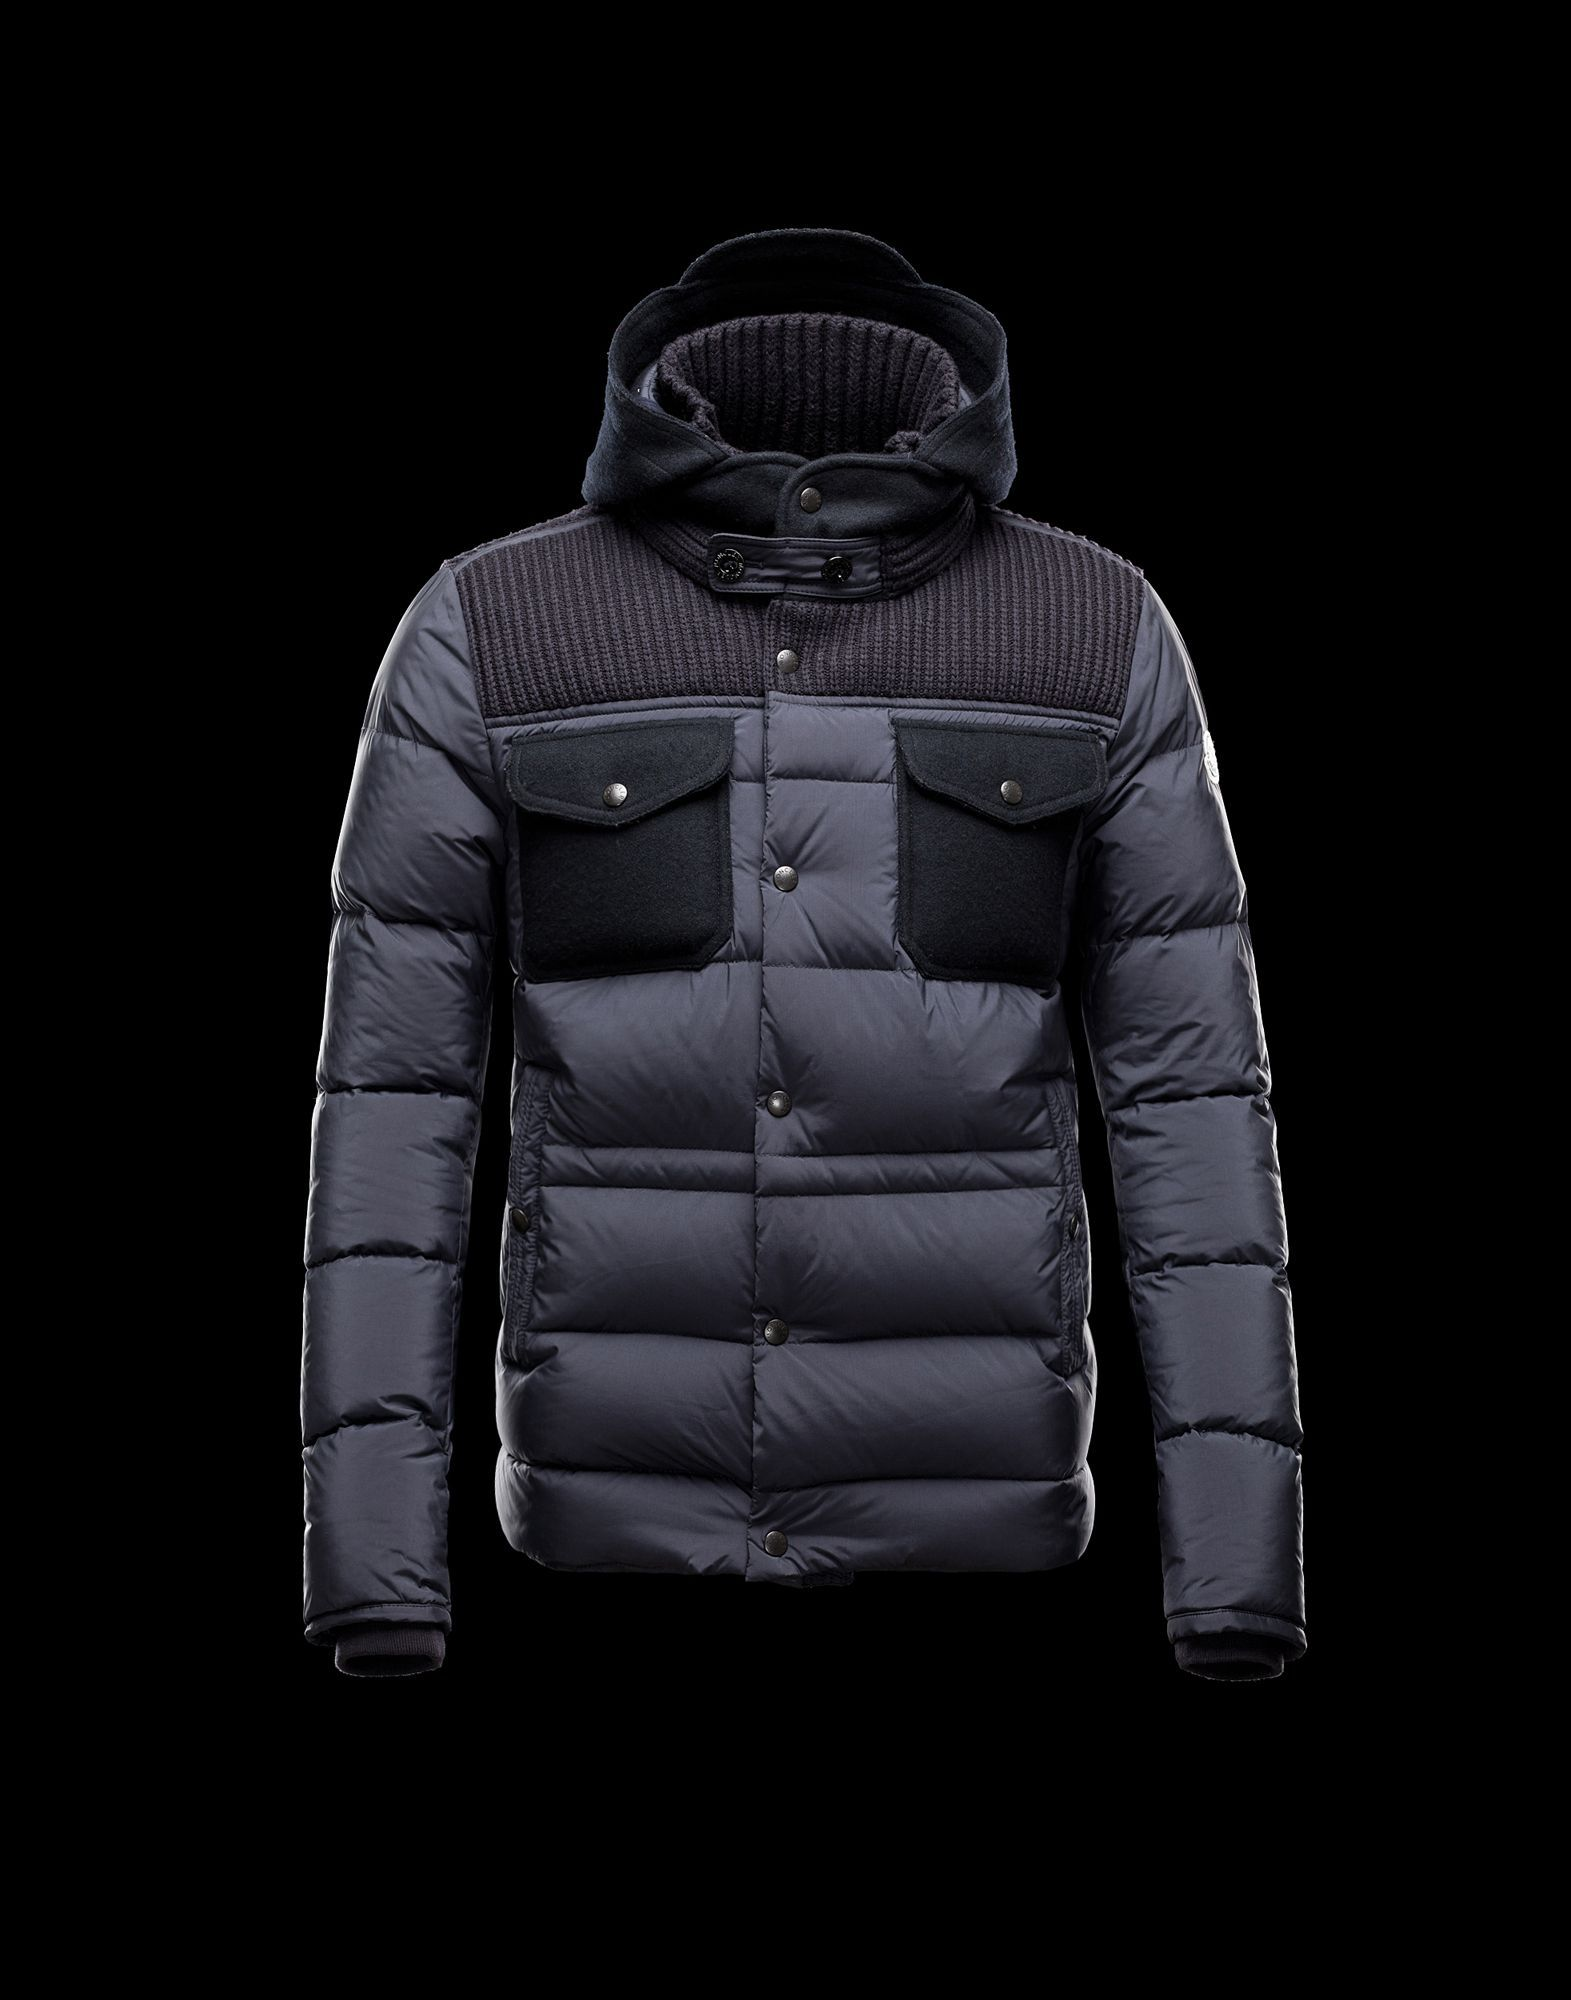 Jacket Men - Outerwear Men on Moncler Online Store   Jacket ... 4e5be135d94